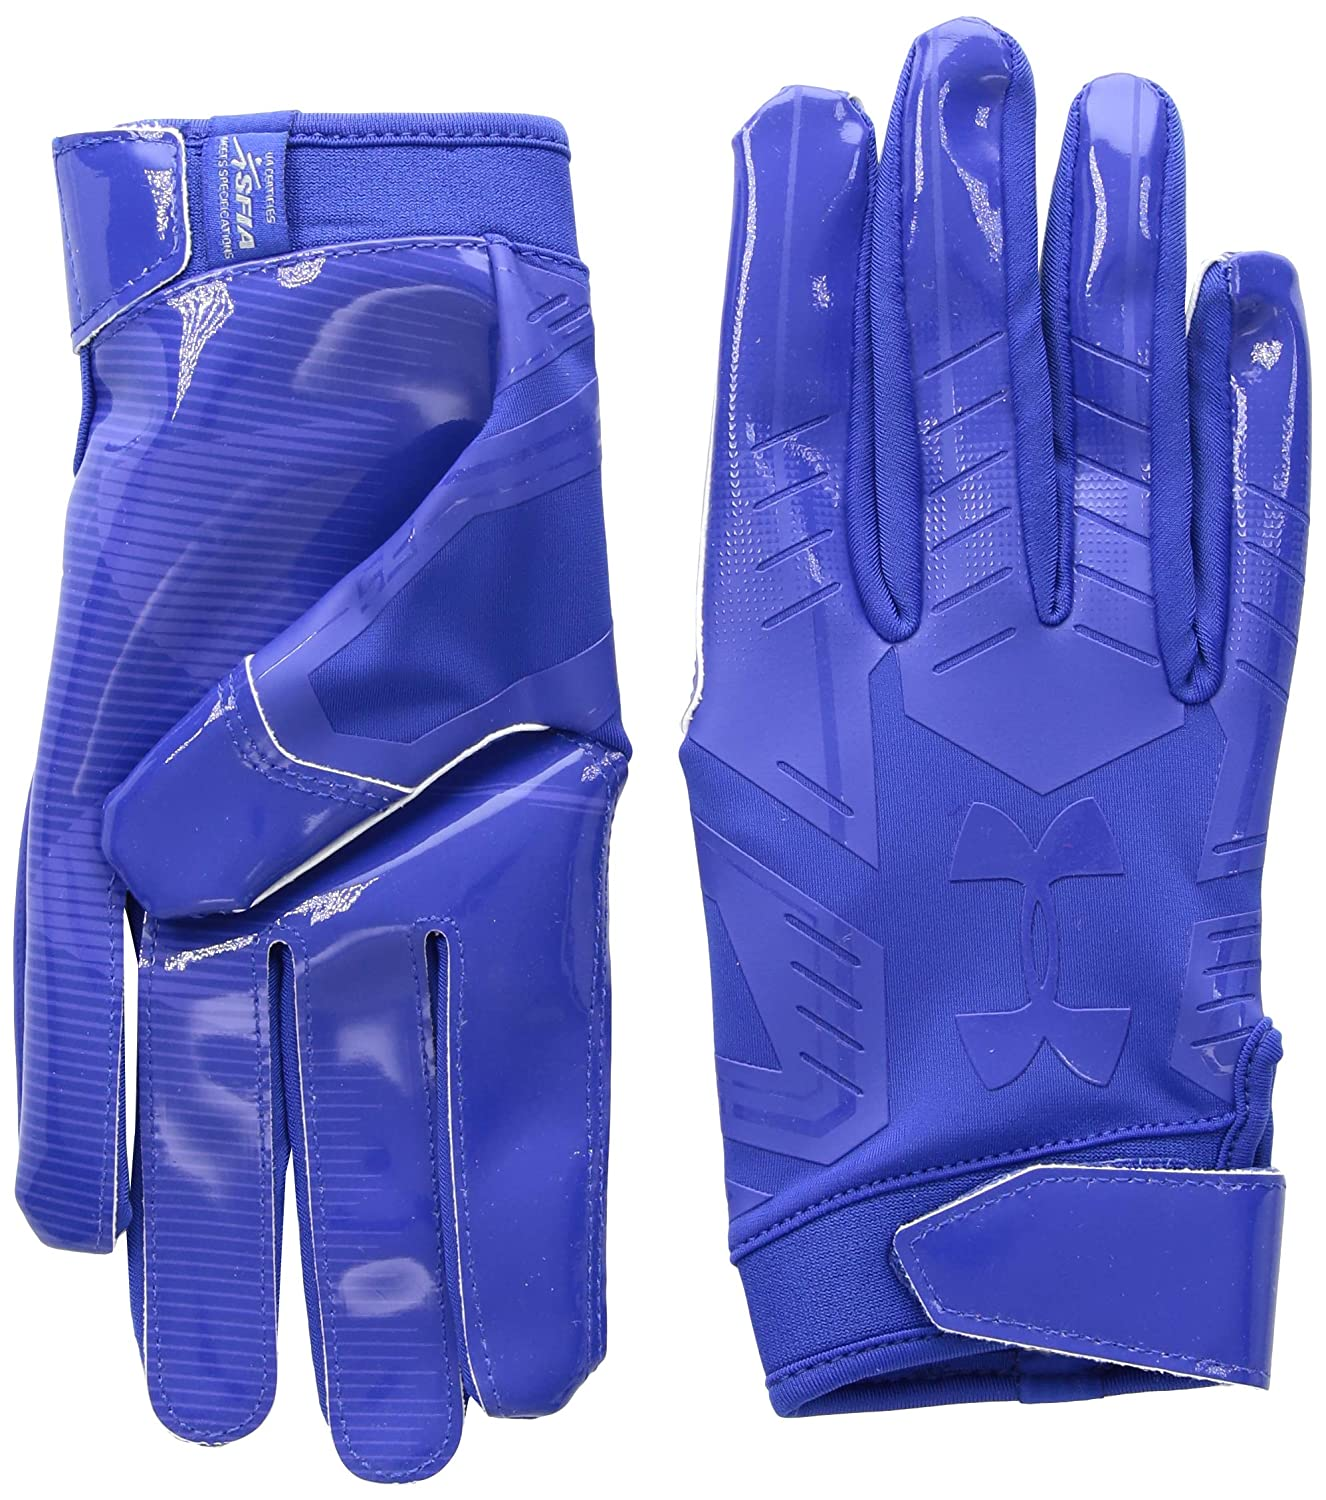 Under Armour Men's F6 LE Football Gloves Under Armour Accessories 1315615